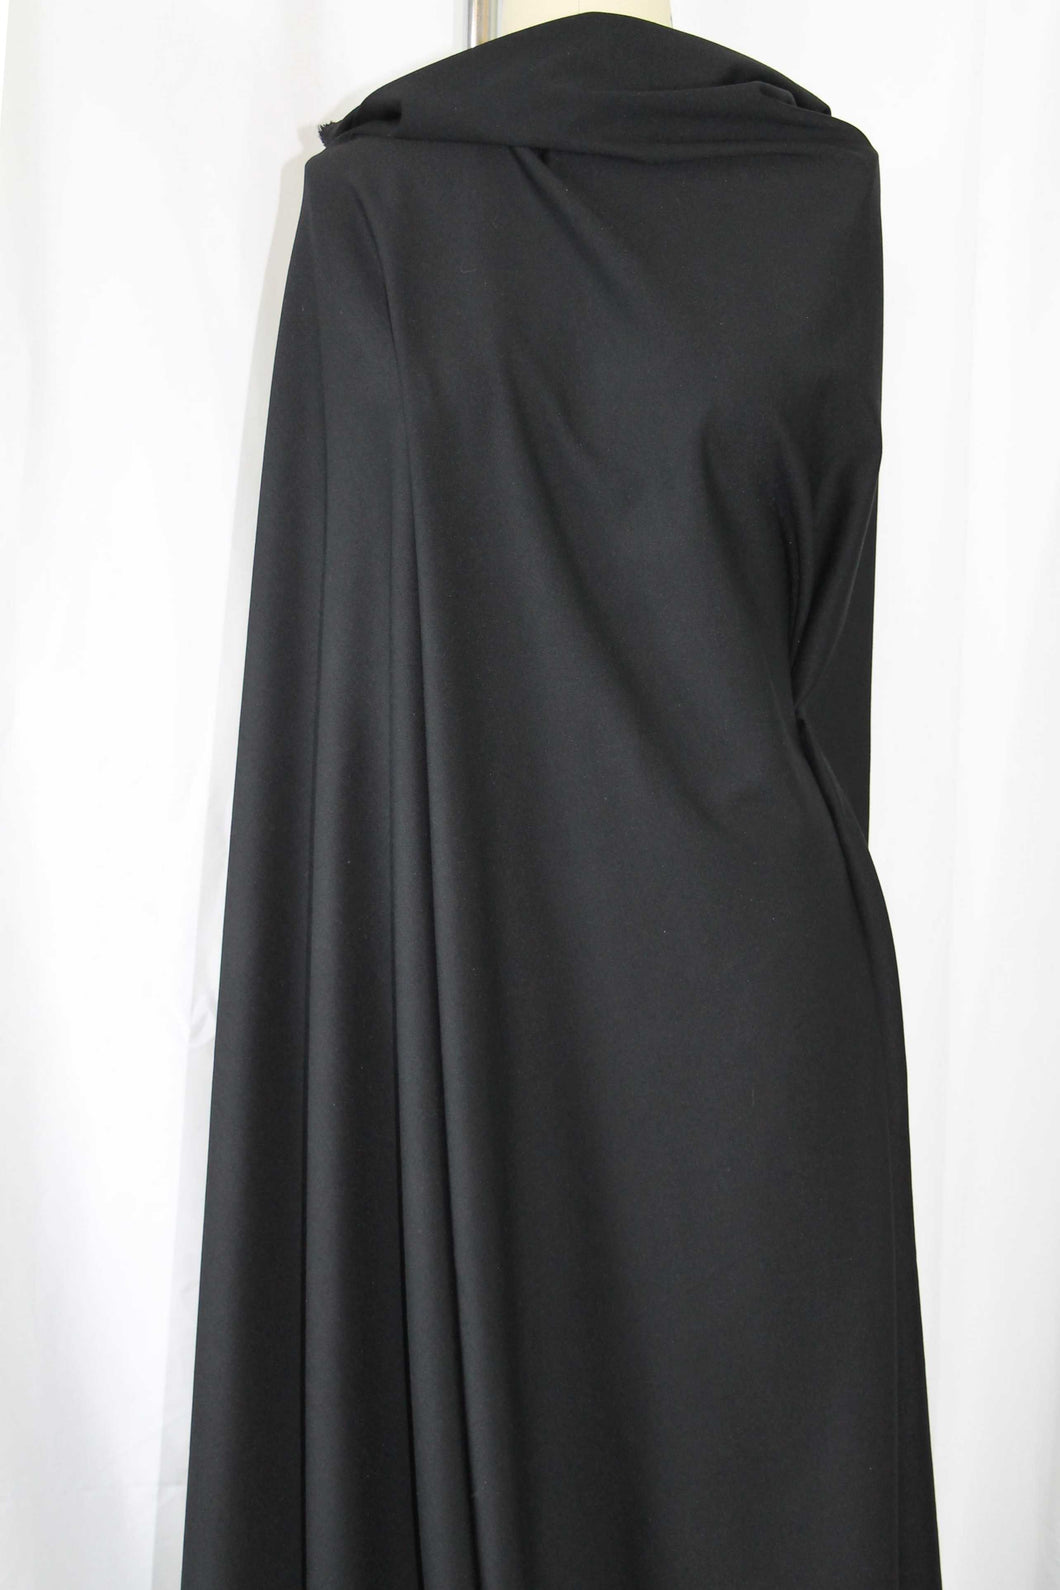 Designer Rayon Double Knit - Black